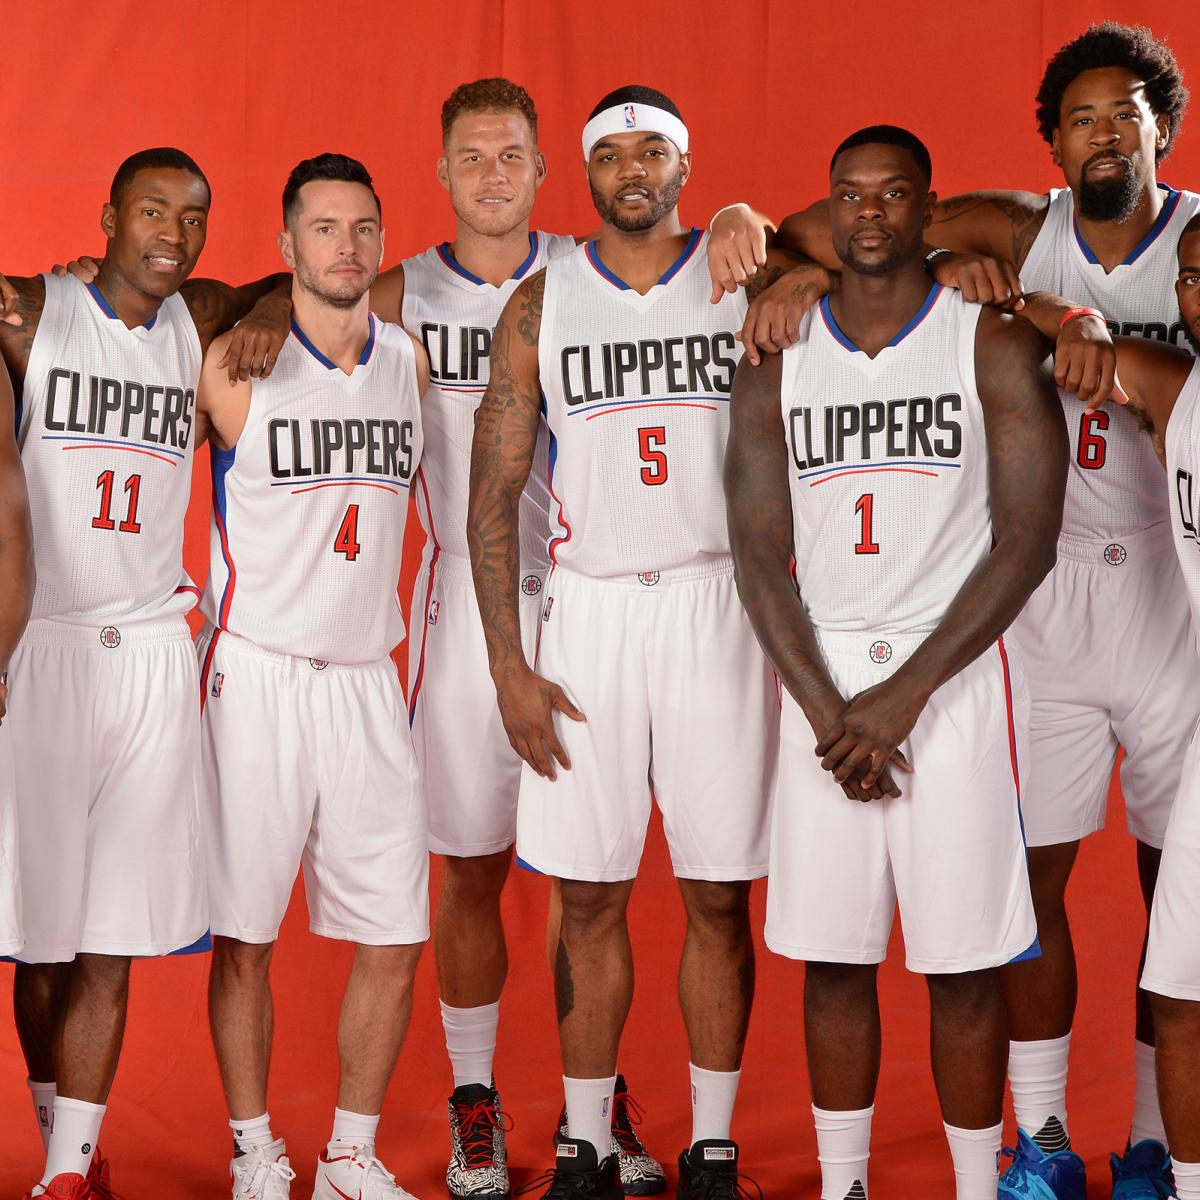 Nuggets Clippers Highlights: NBA Canada Series 2015: Time, TV Schedule, Live Stream For